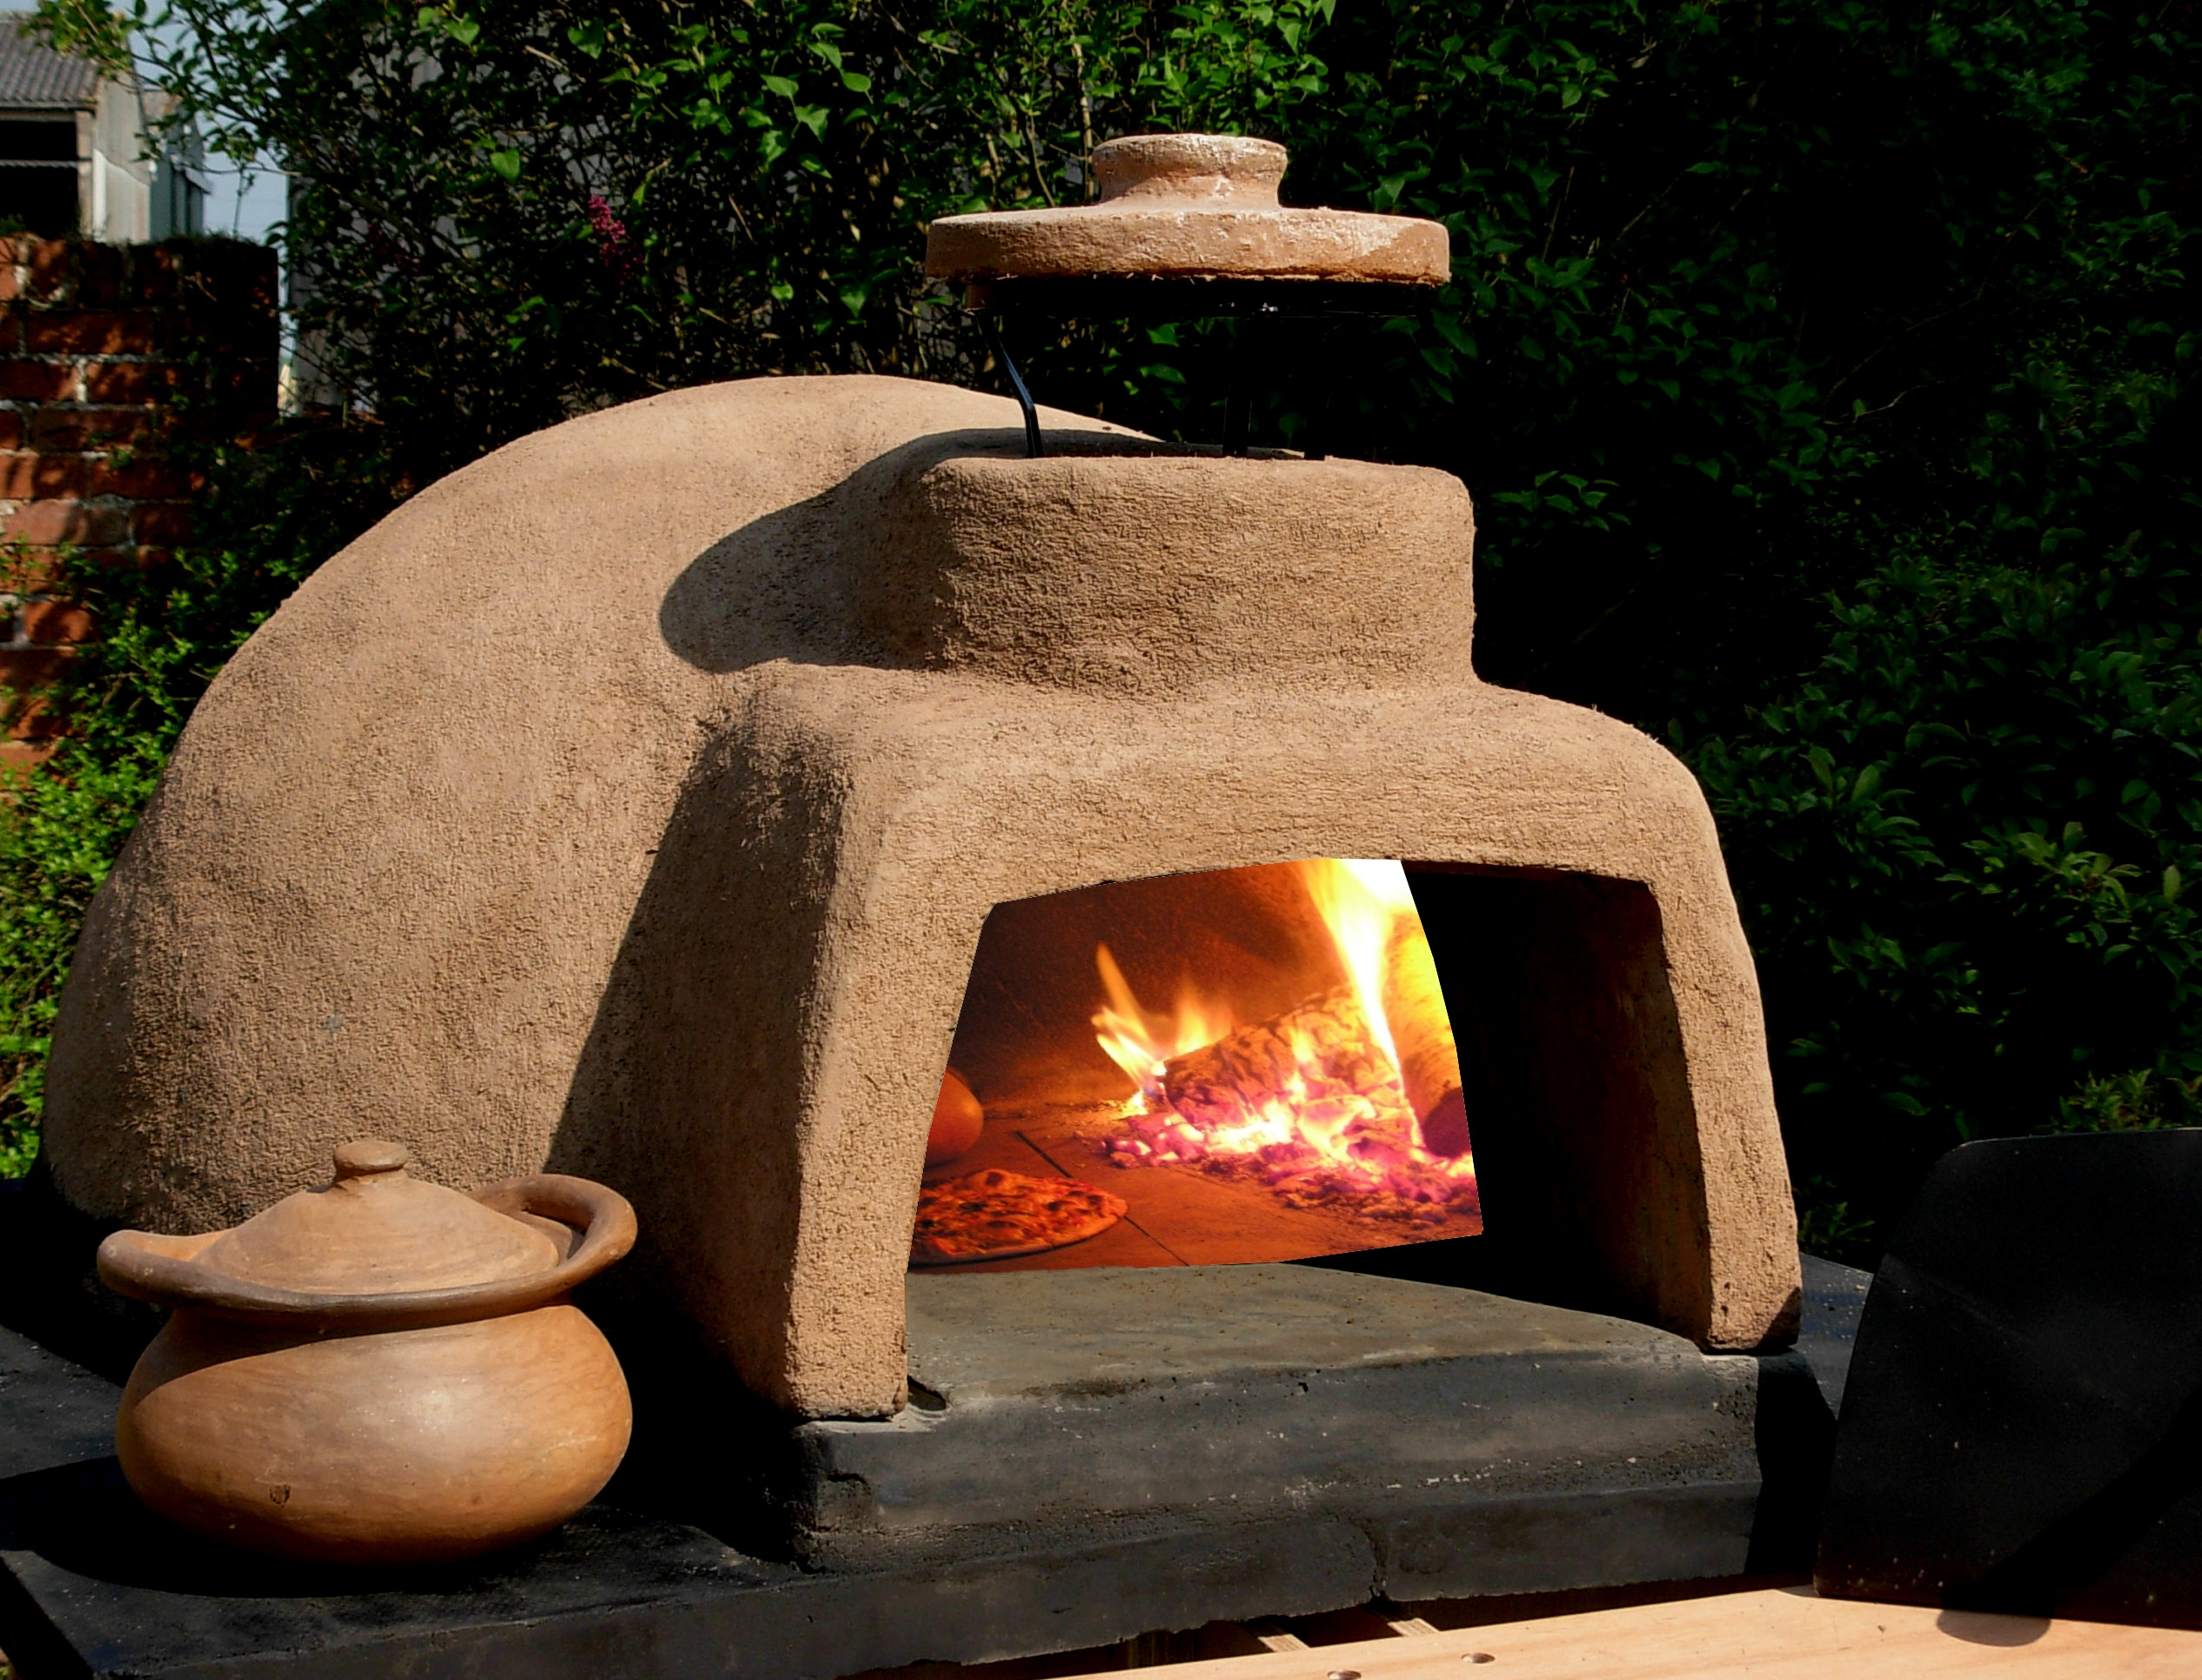 Outdoor Pizza Oven Plans DIY  15 DIY Pizza Oven Plans For Outdoors Backing – The Self